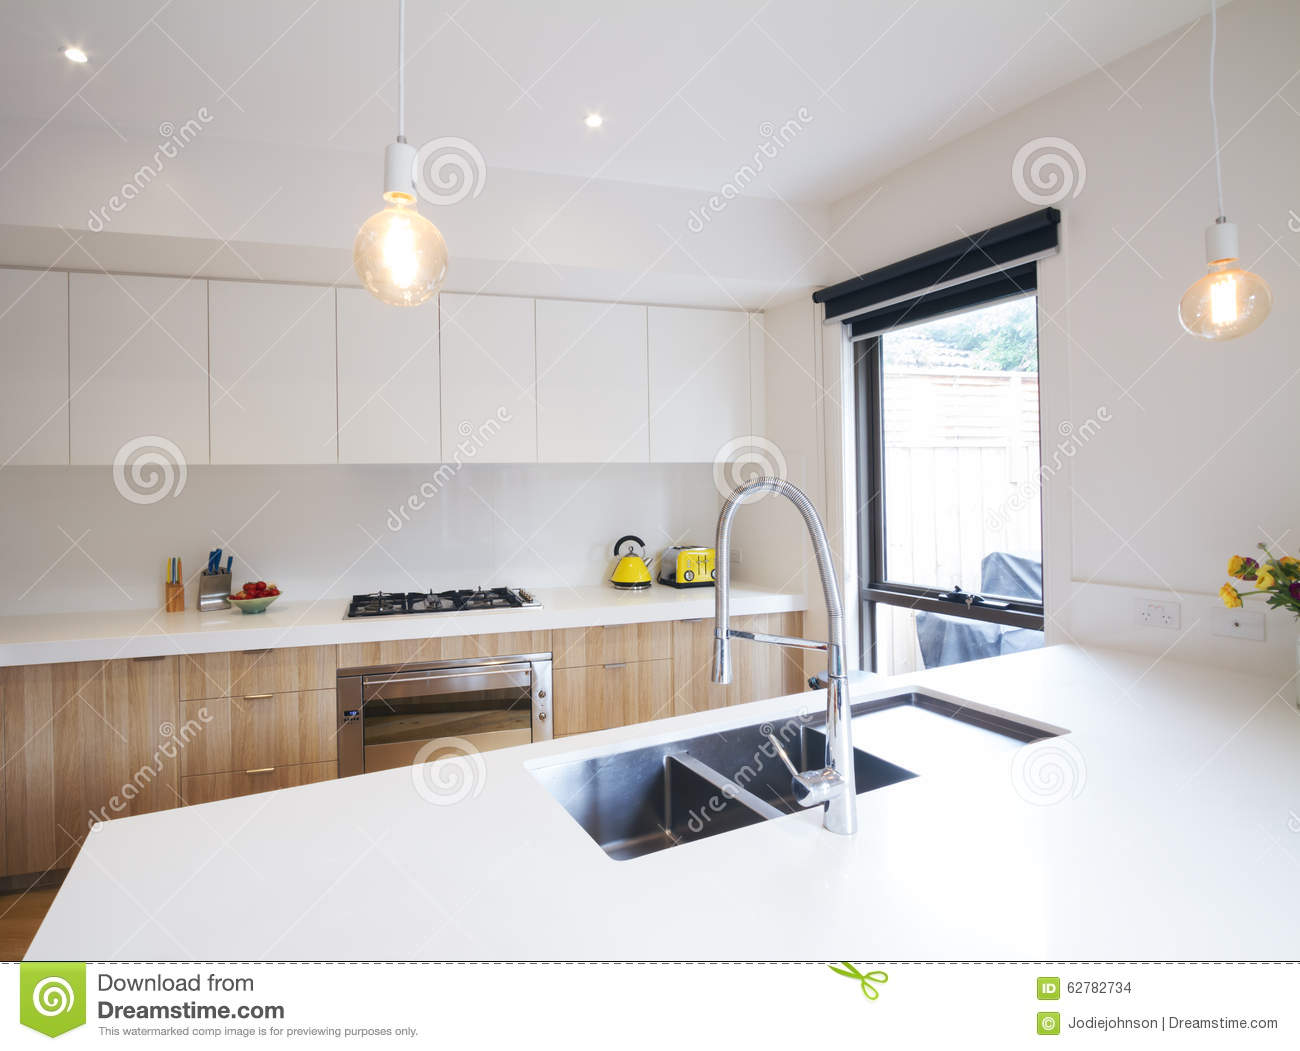 Modern Kitchen With Pendant Lighting And Sunken Sink Stock ...